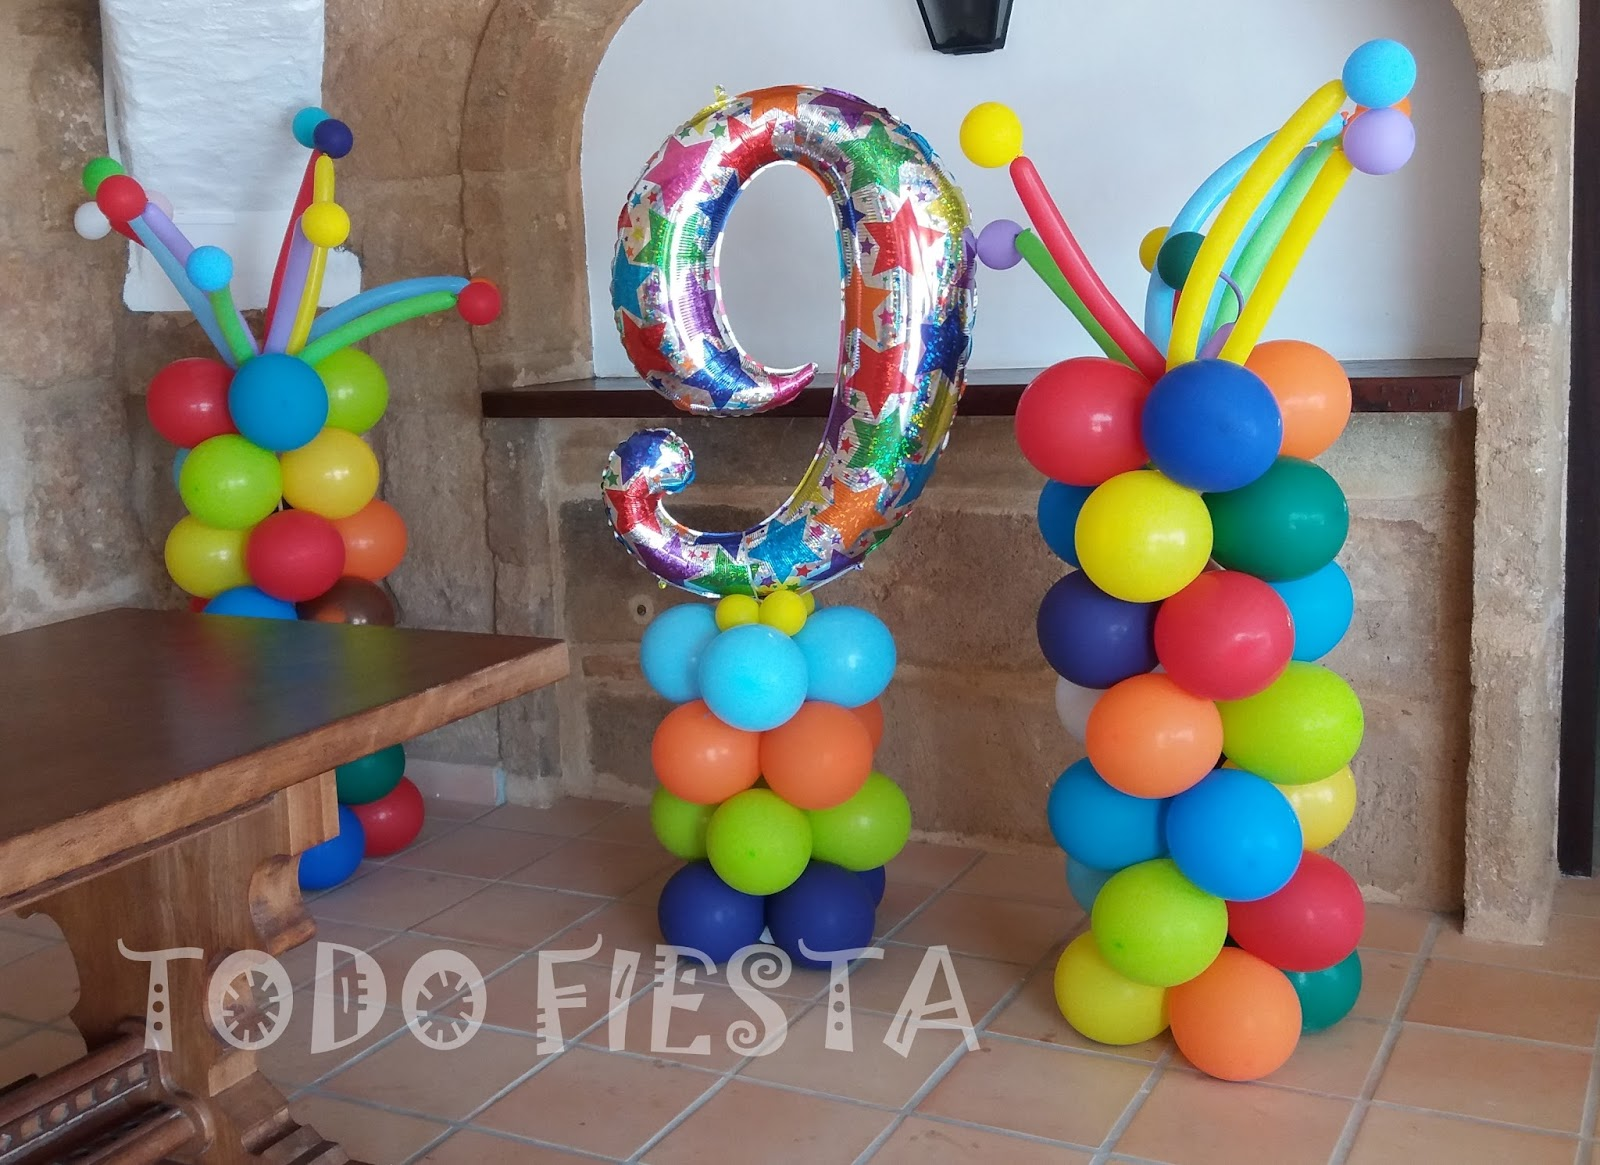 Decoraci n con globos de todo fiesta decoraciones para for Todo decoracion